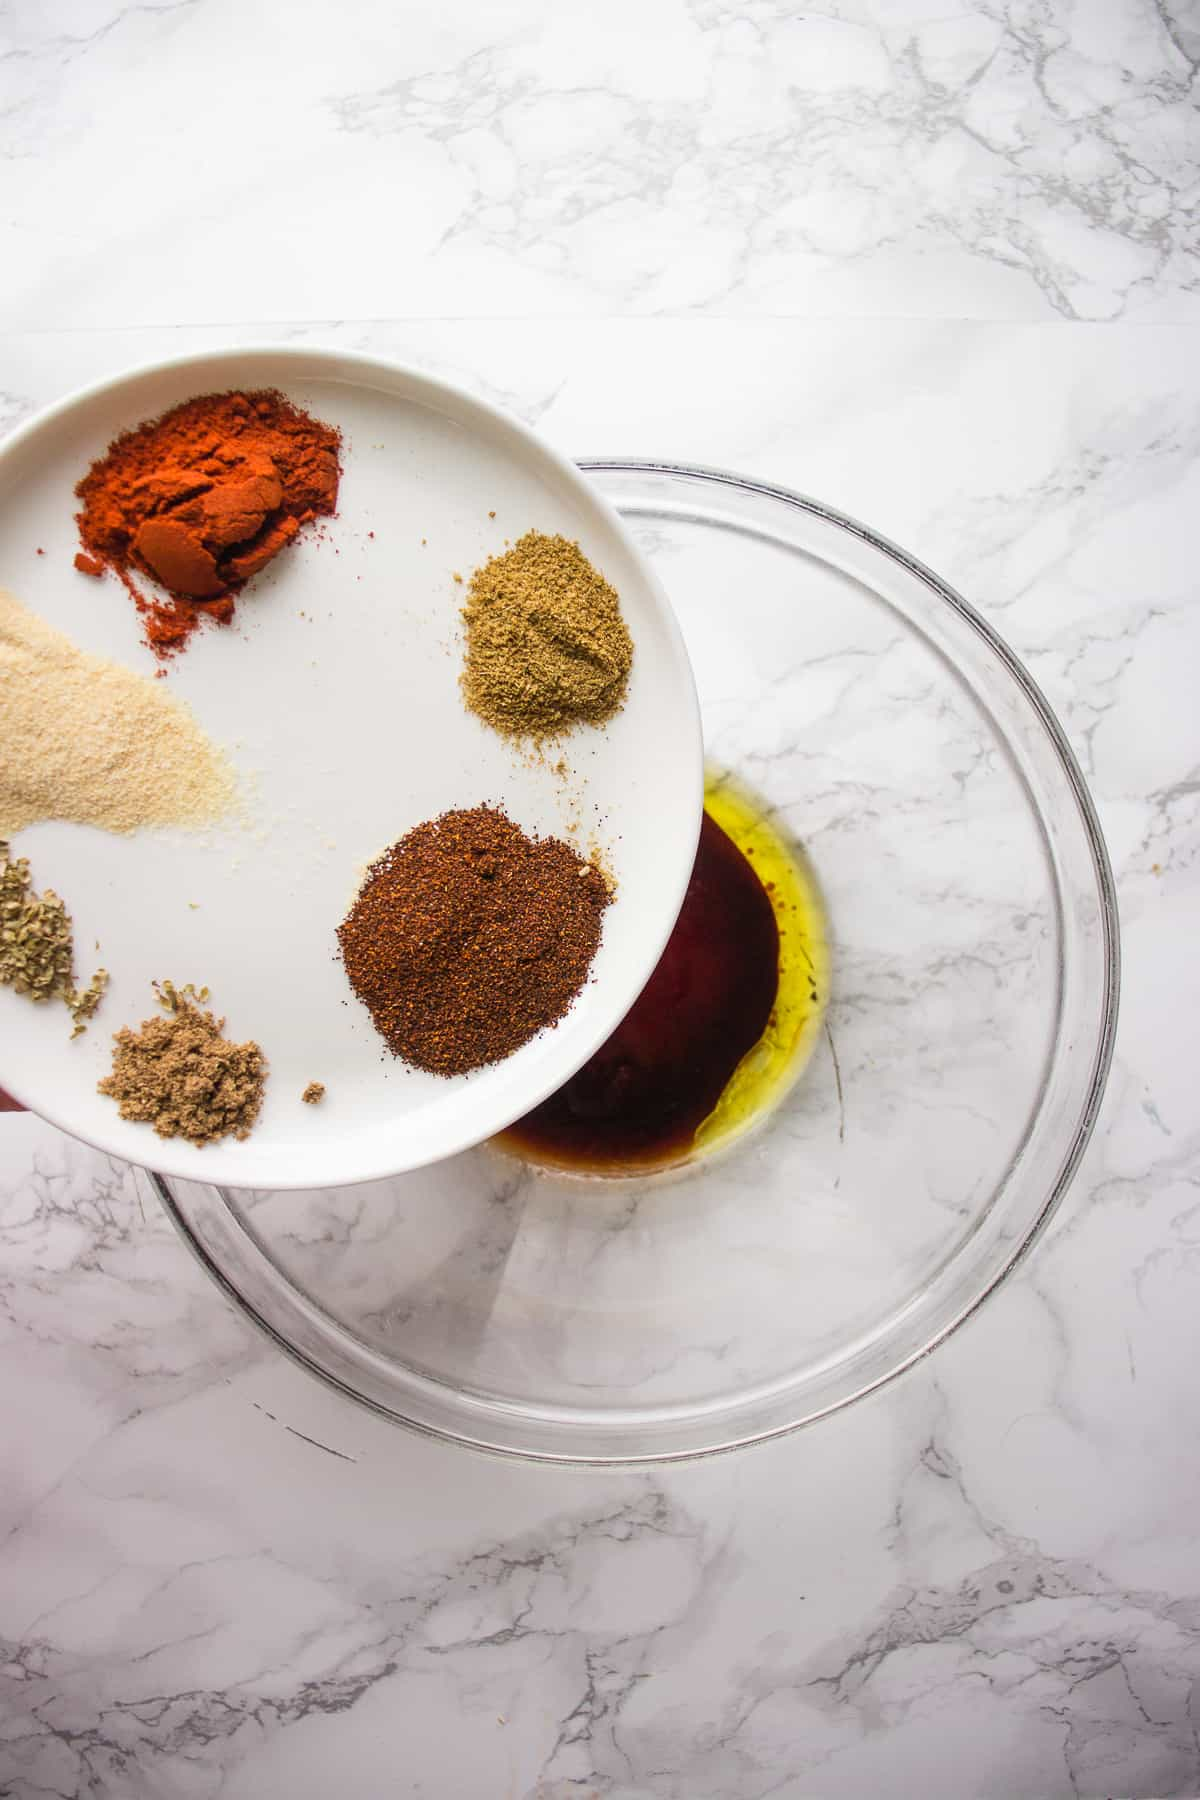 Combining taso seasoning in a glass bowl on a white background